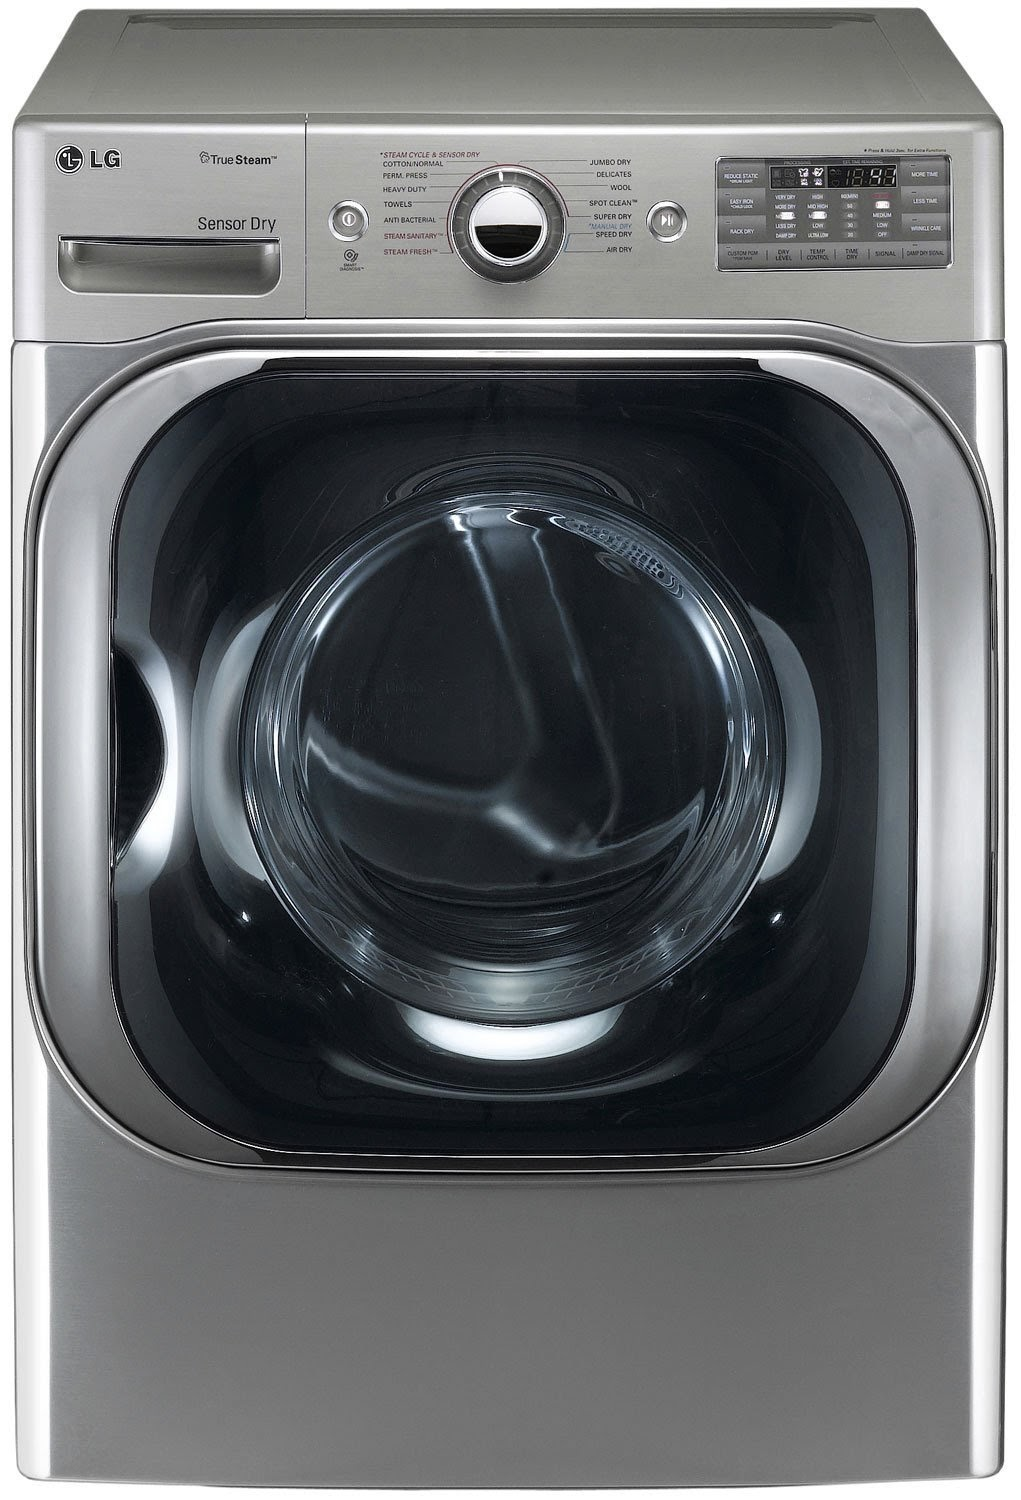 what are steam washers and dryers